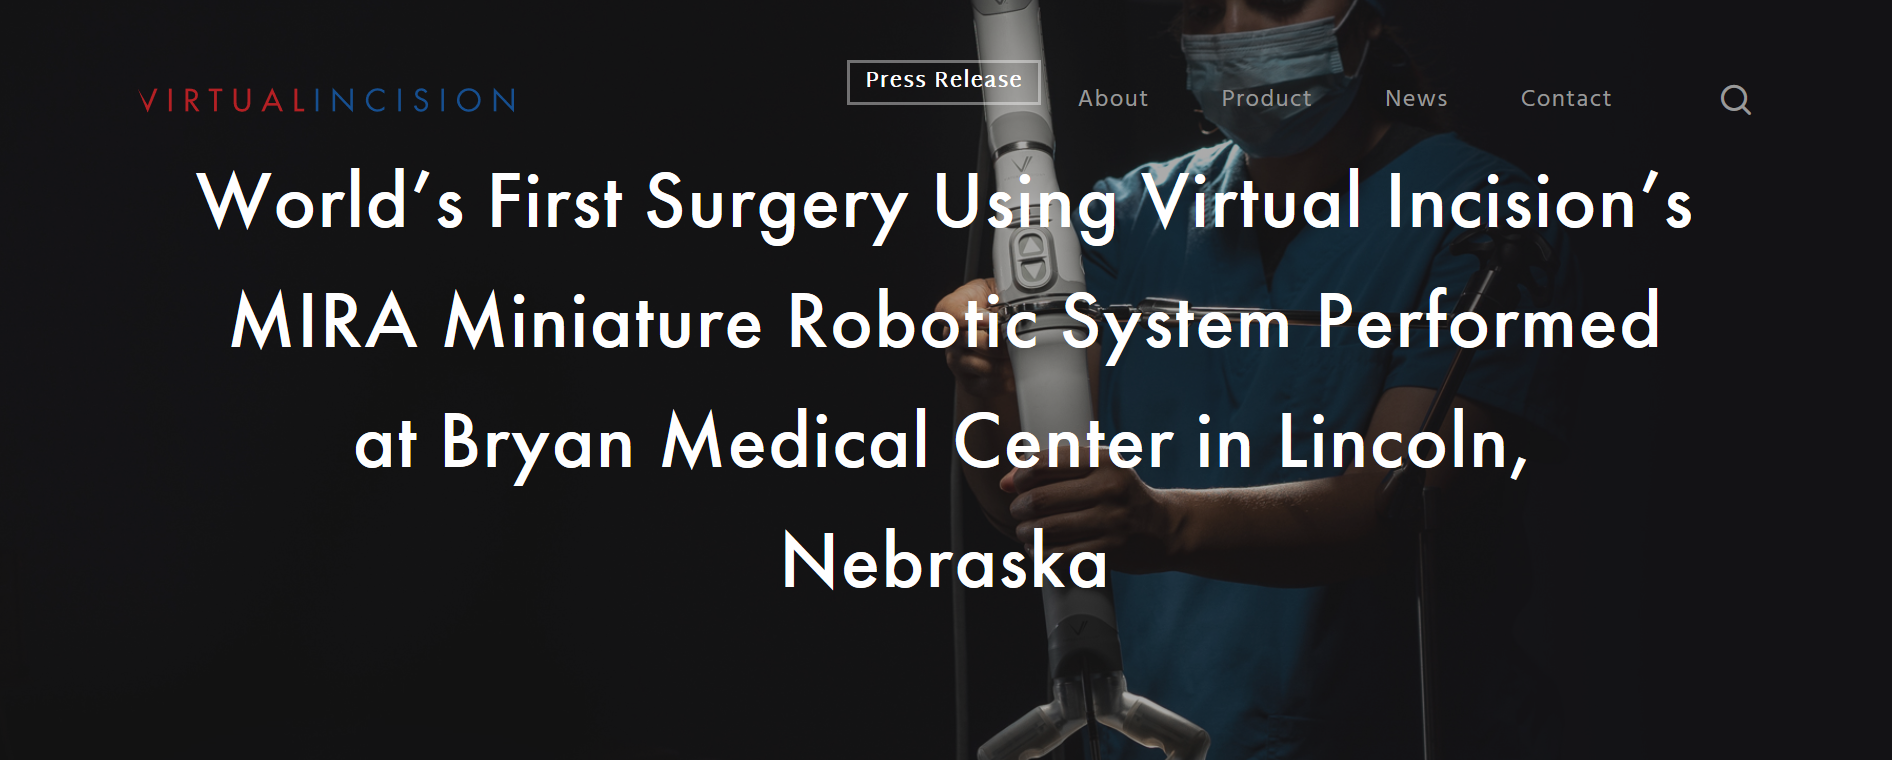 World's First Surgery Using Virtual Incision's MIRA Miniature Robotic System Performed at Bryan Medical Center in Lincoln, Nebraska